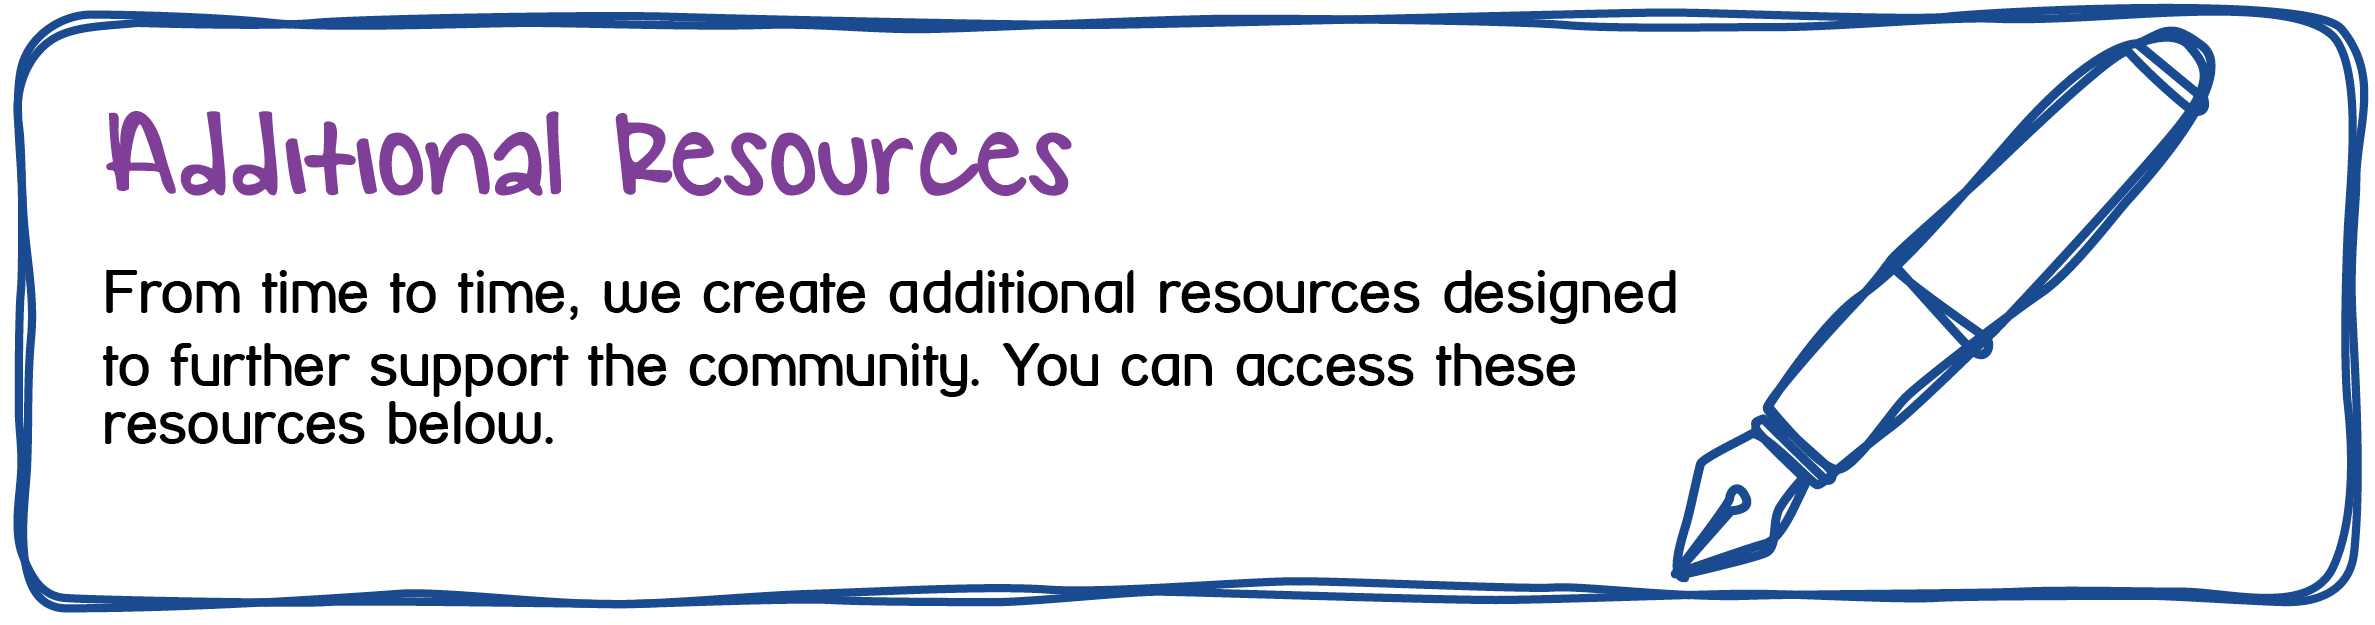 Maidstone and Mid-Kent Mind - Additional Resources - designed to support the community.